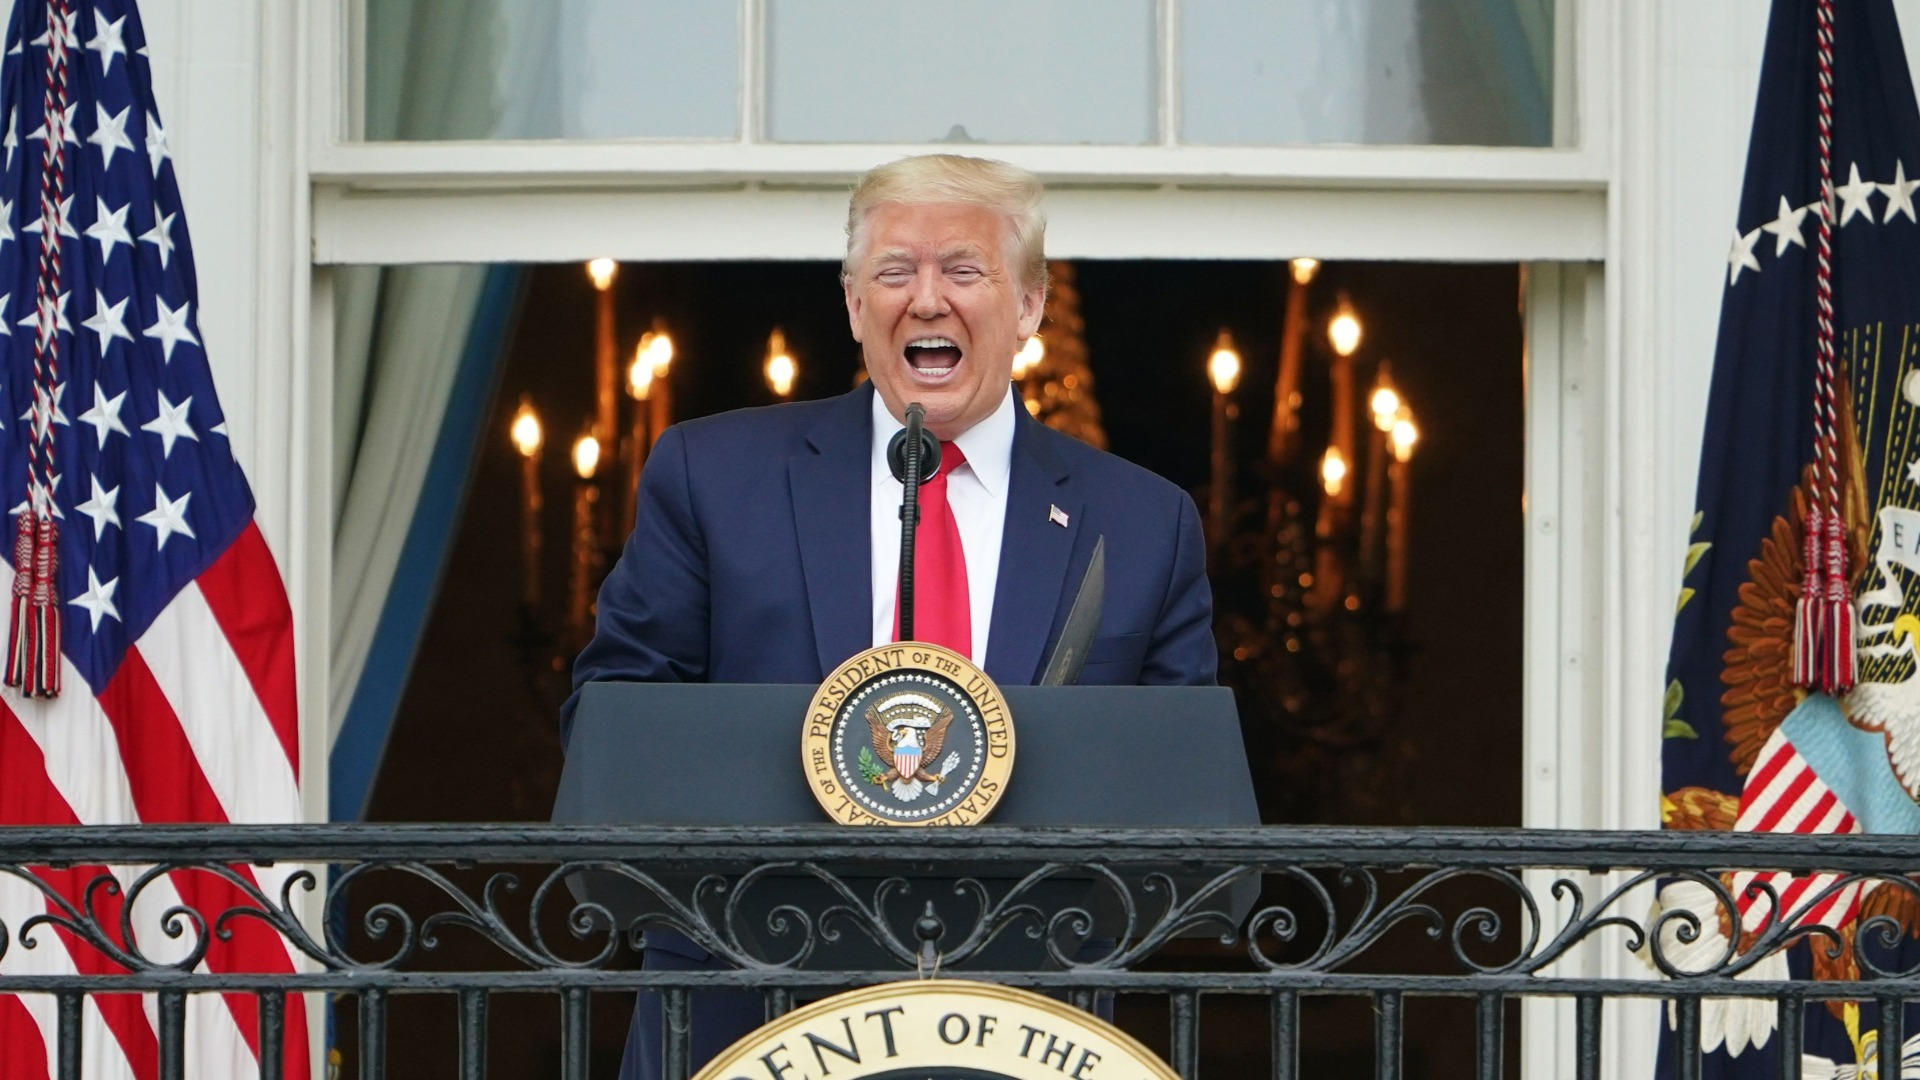 Trump Claims He's Done Taking Hydroxychloroquine as WHO Pauses Clinical Trials